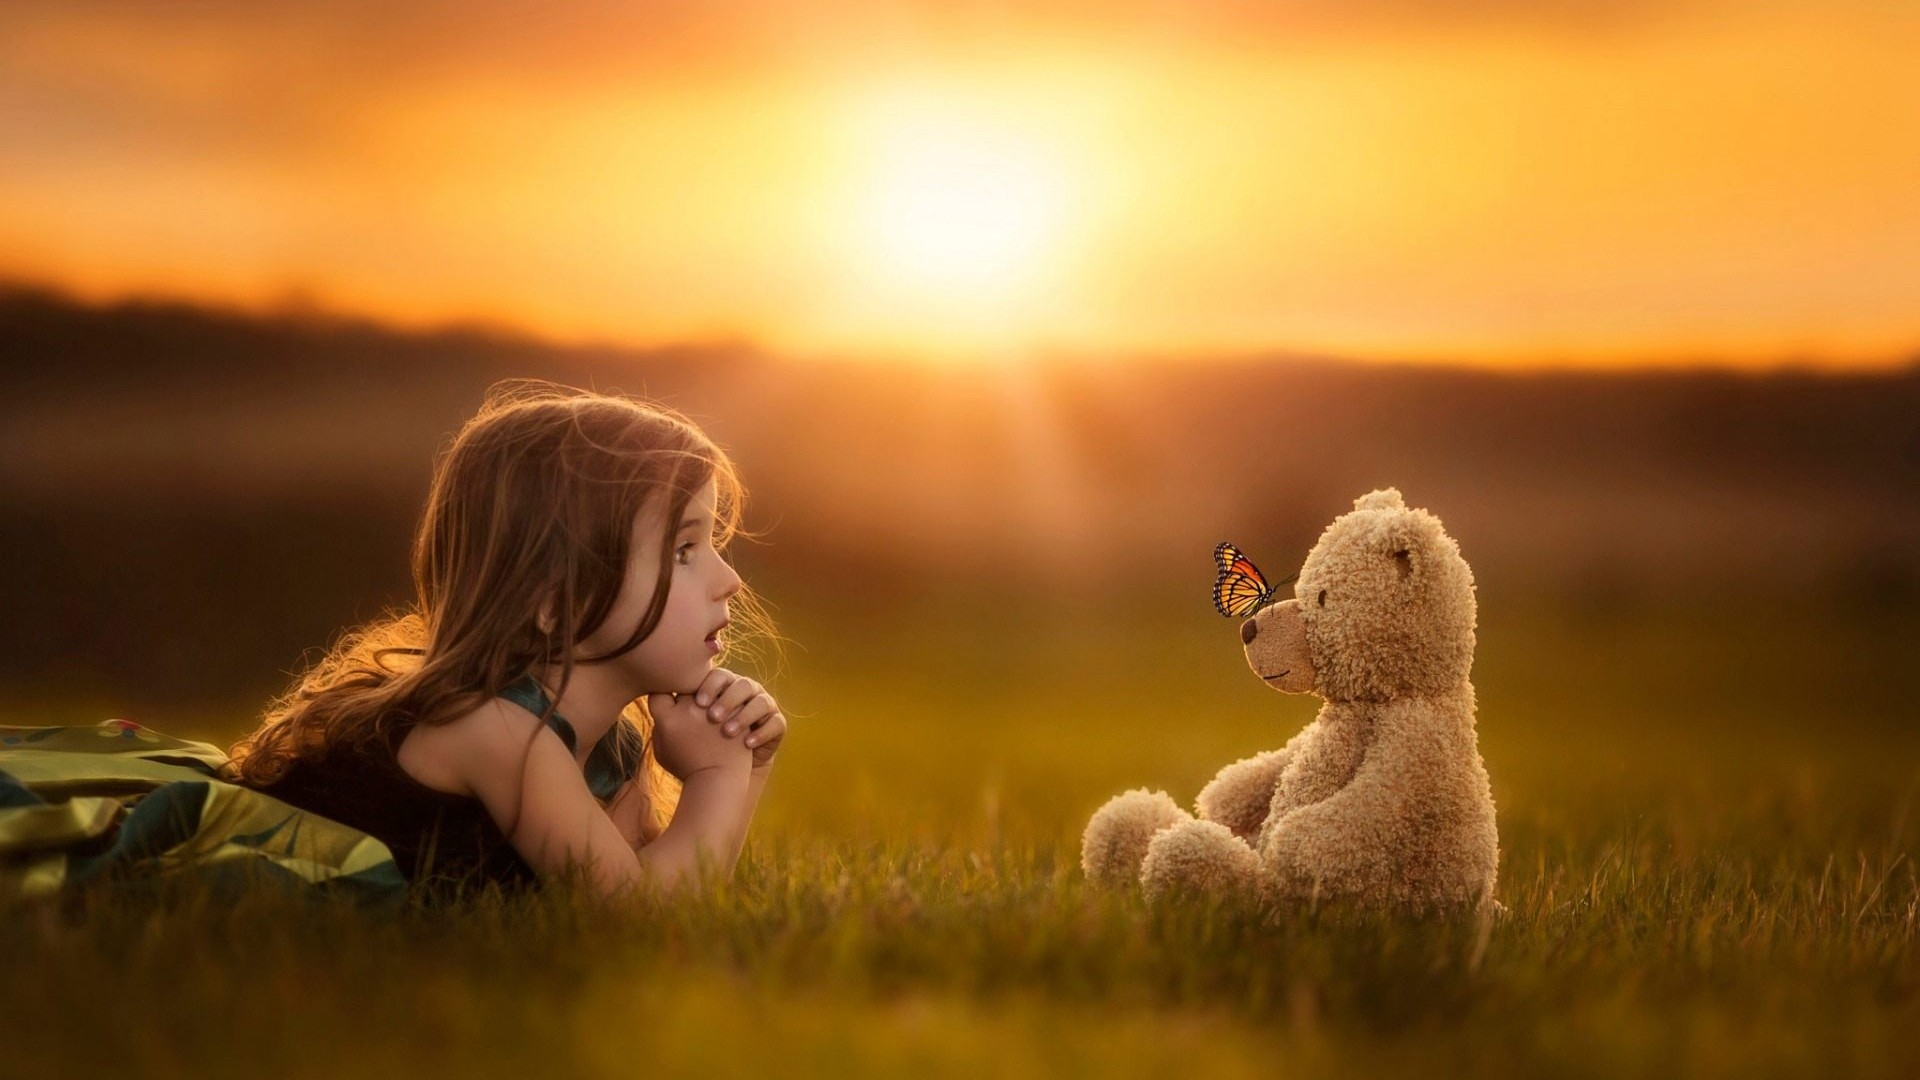 Cute-Girl-With-Teddy-Bear-Cute-1920x1080-Need-iPhone-S-Plus-Background-wallpaper-wp3604464